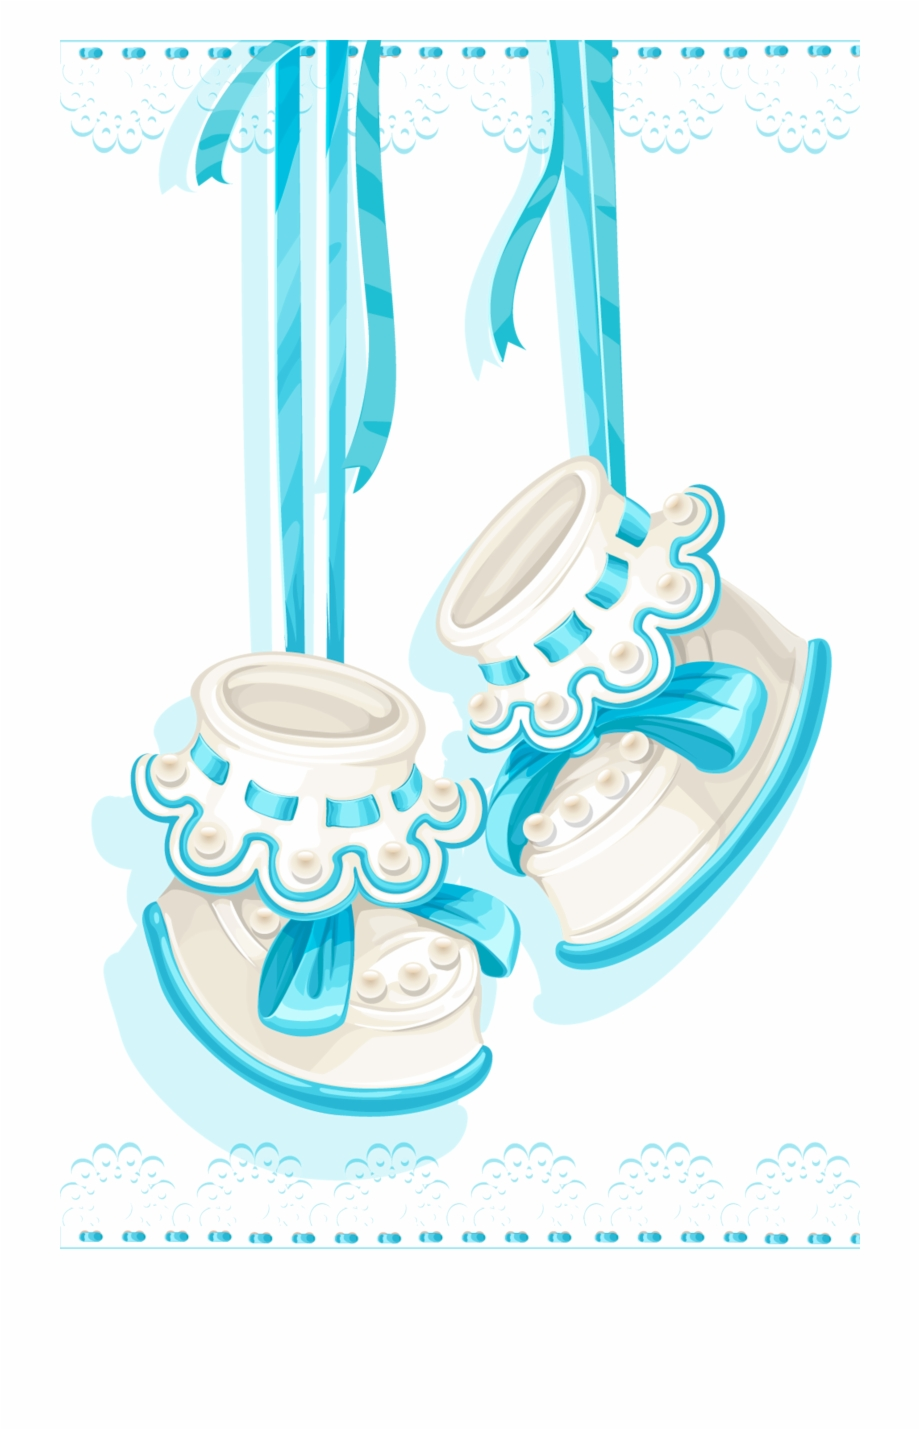 And Boy Infant Shoes Keepsake Memory Shower Clipart Baby Shower Background Girl Transparent Png Download 4369048 Vippng